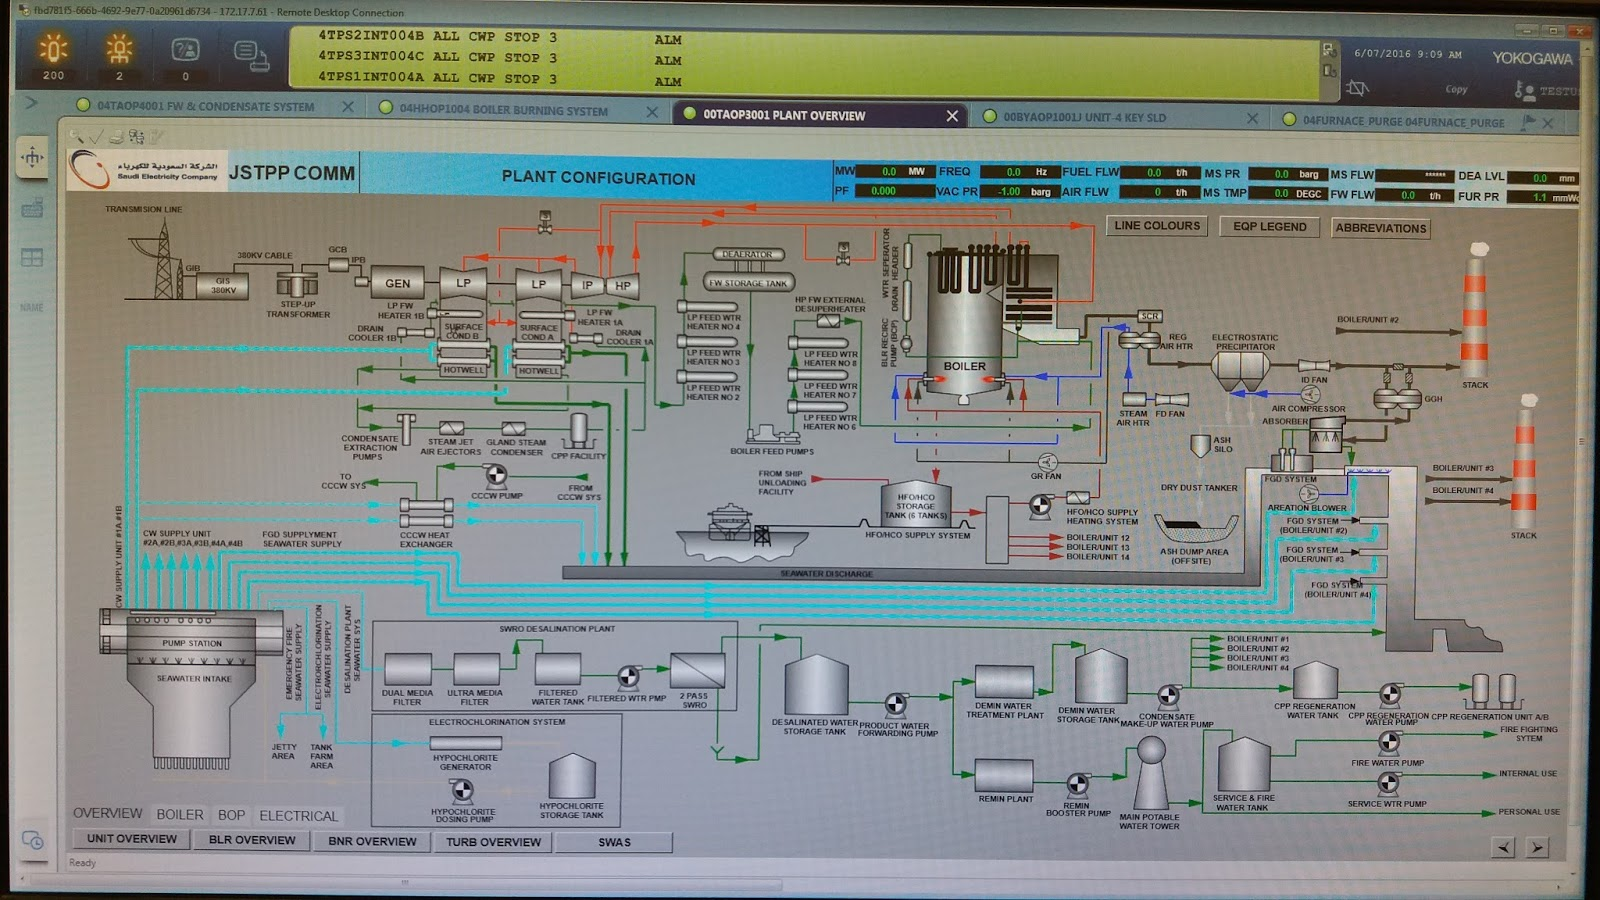 Power Plant Layout and Configuration (Thermal PP) - PAKTECHPOINT